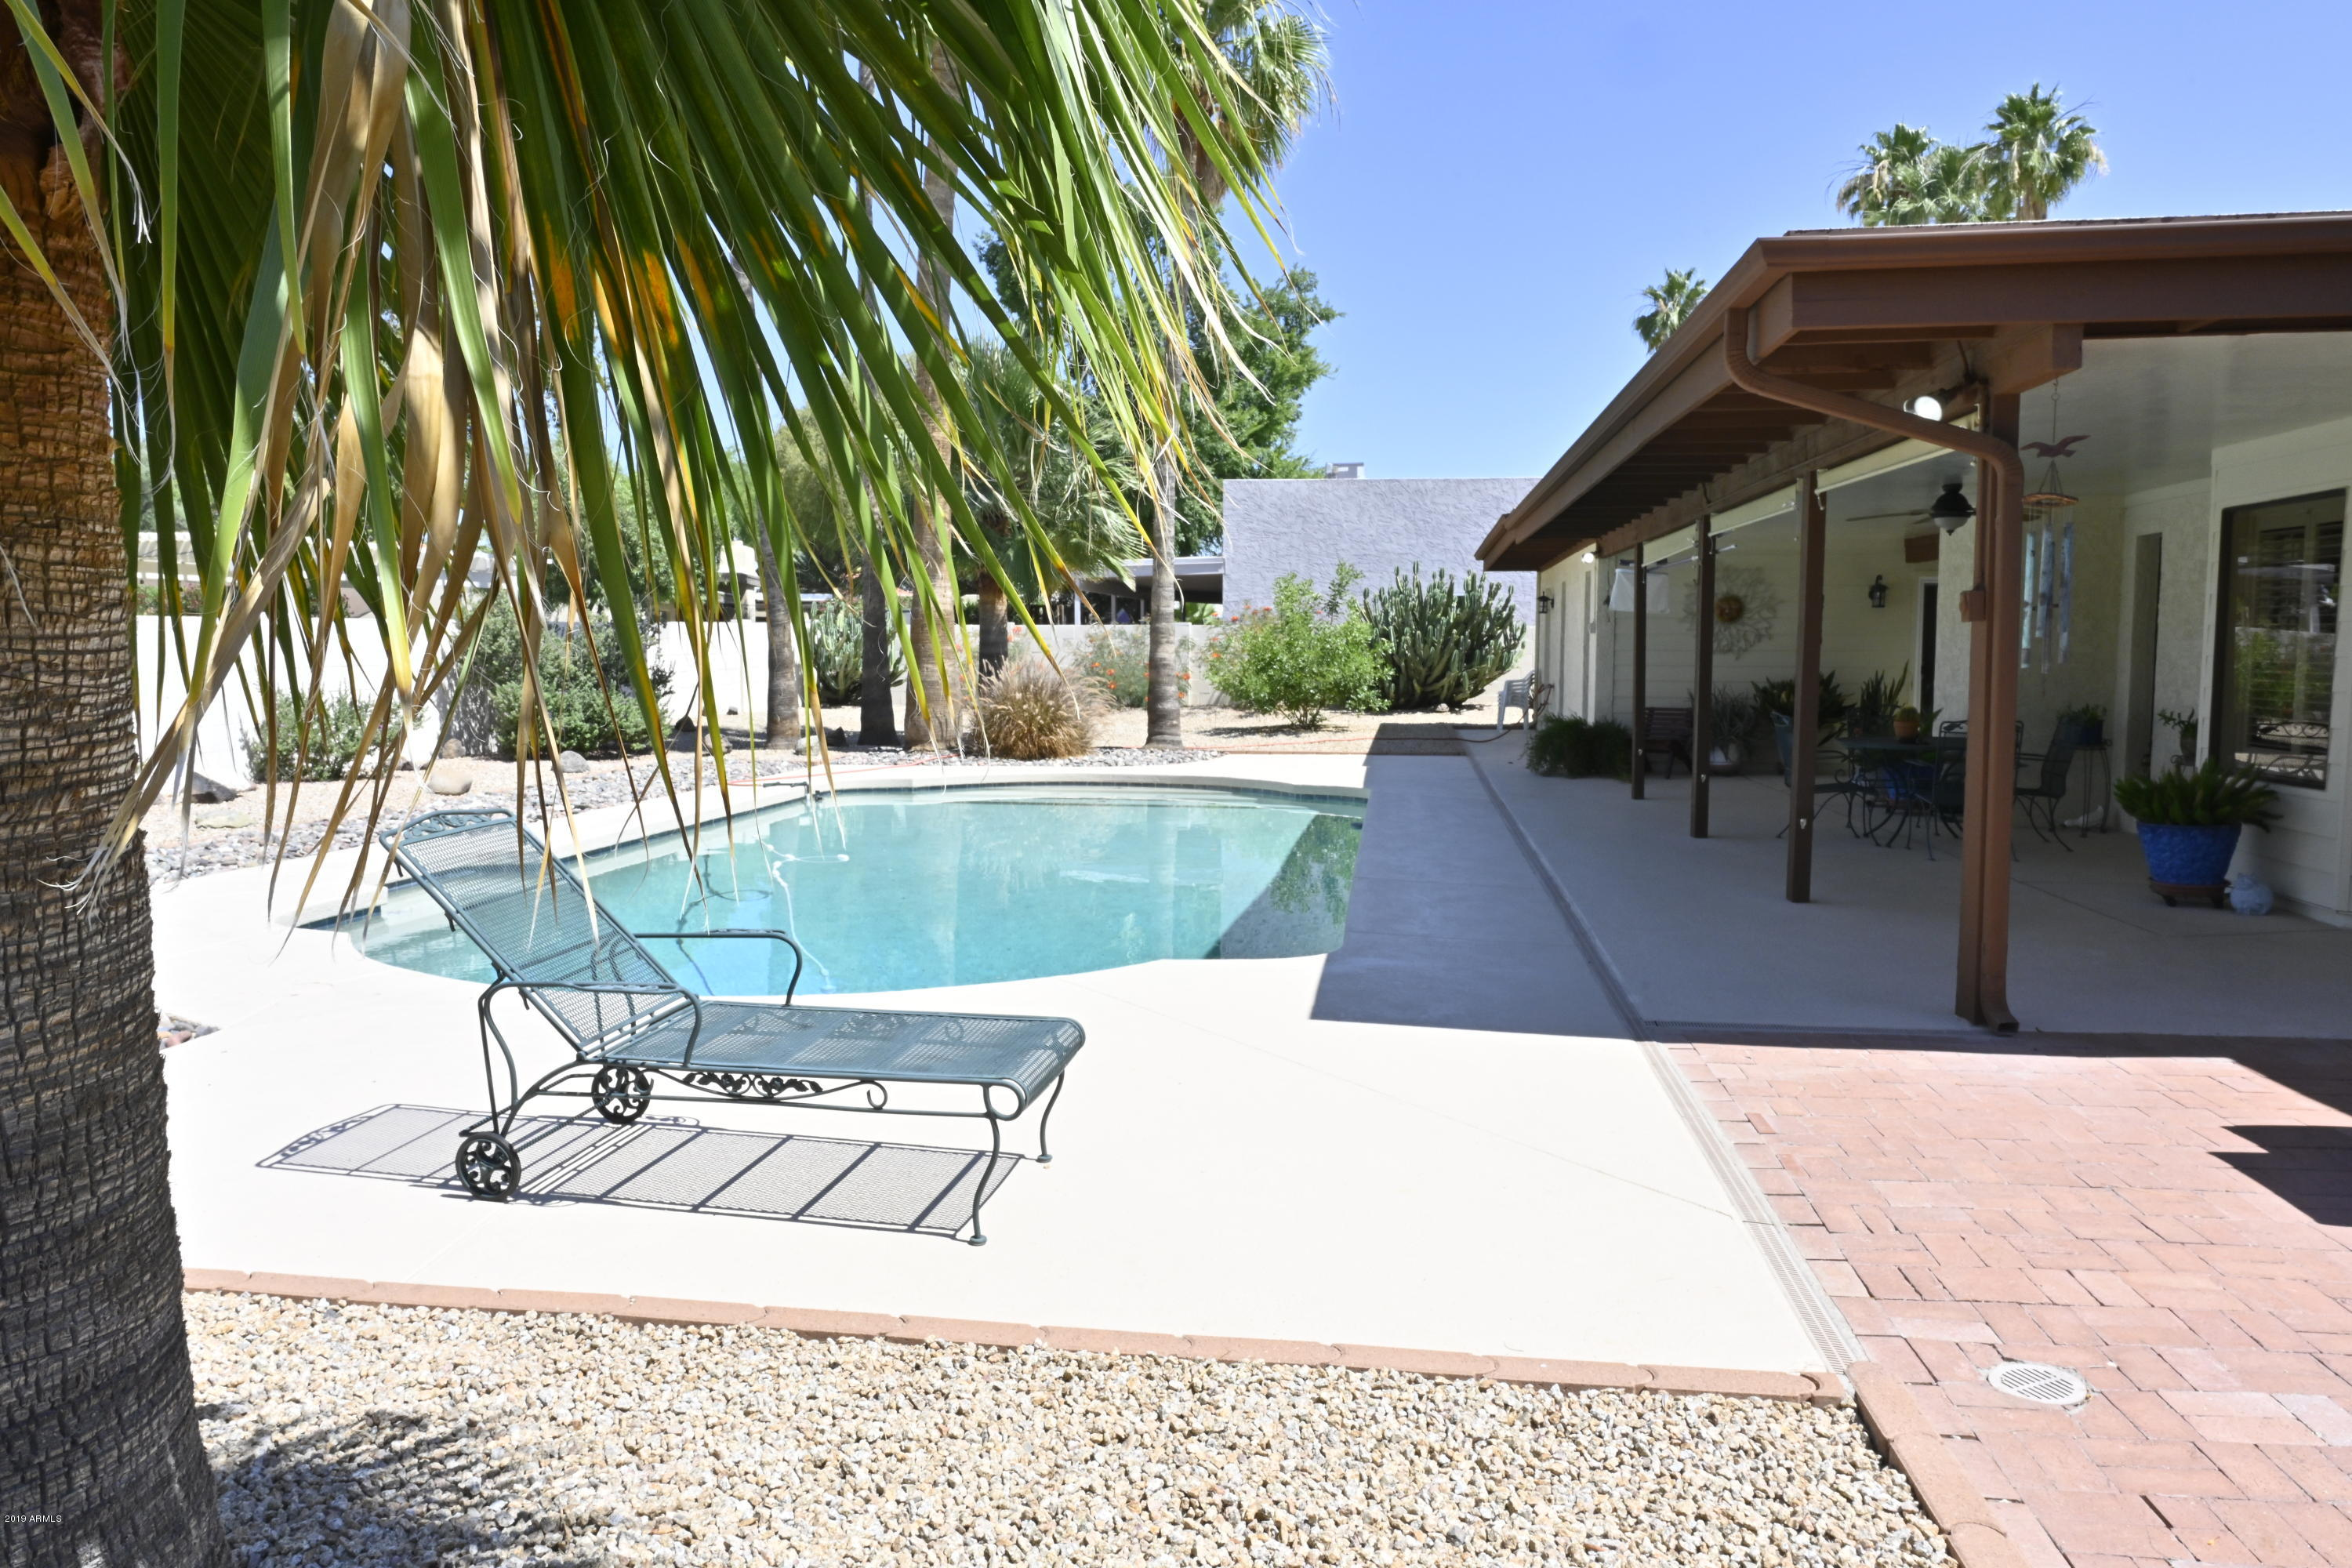 MLS 5934947 14012 N 48TH Way, Scottsdale, AZ 85254 Scottsdale AZ Private Pool